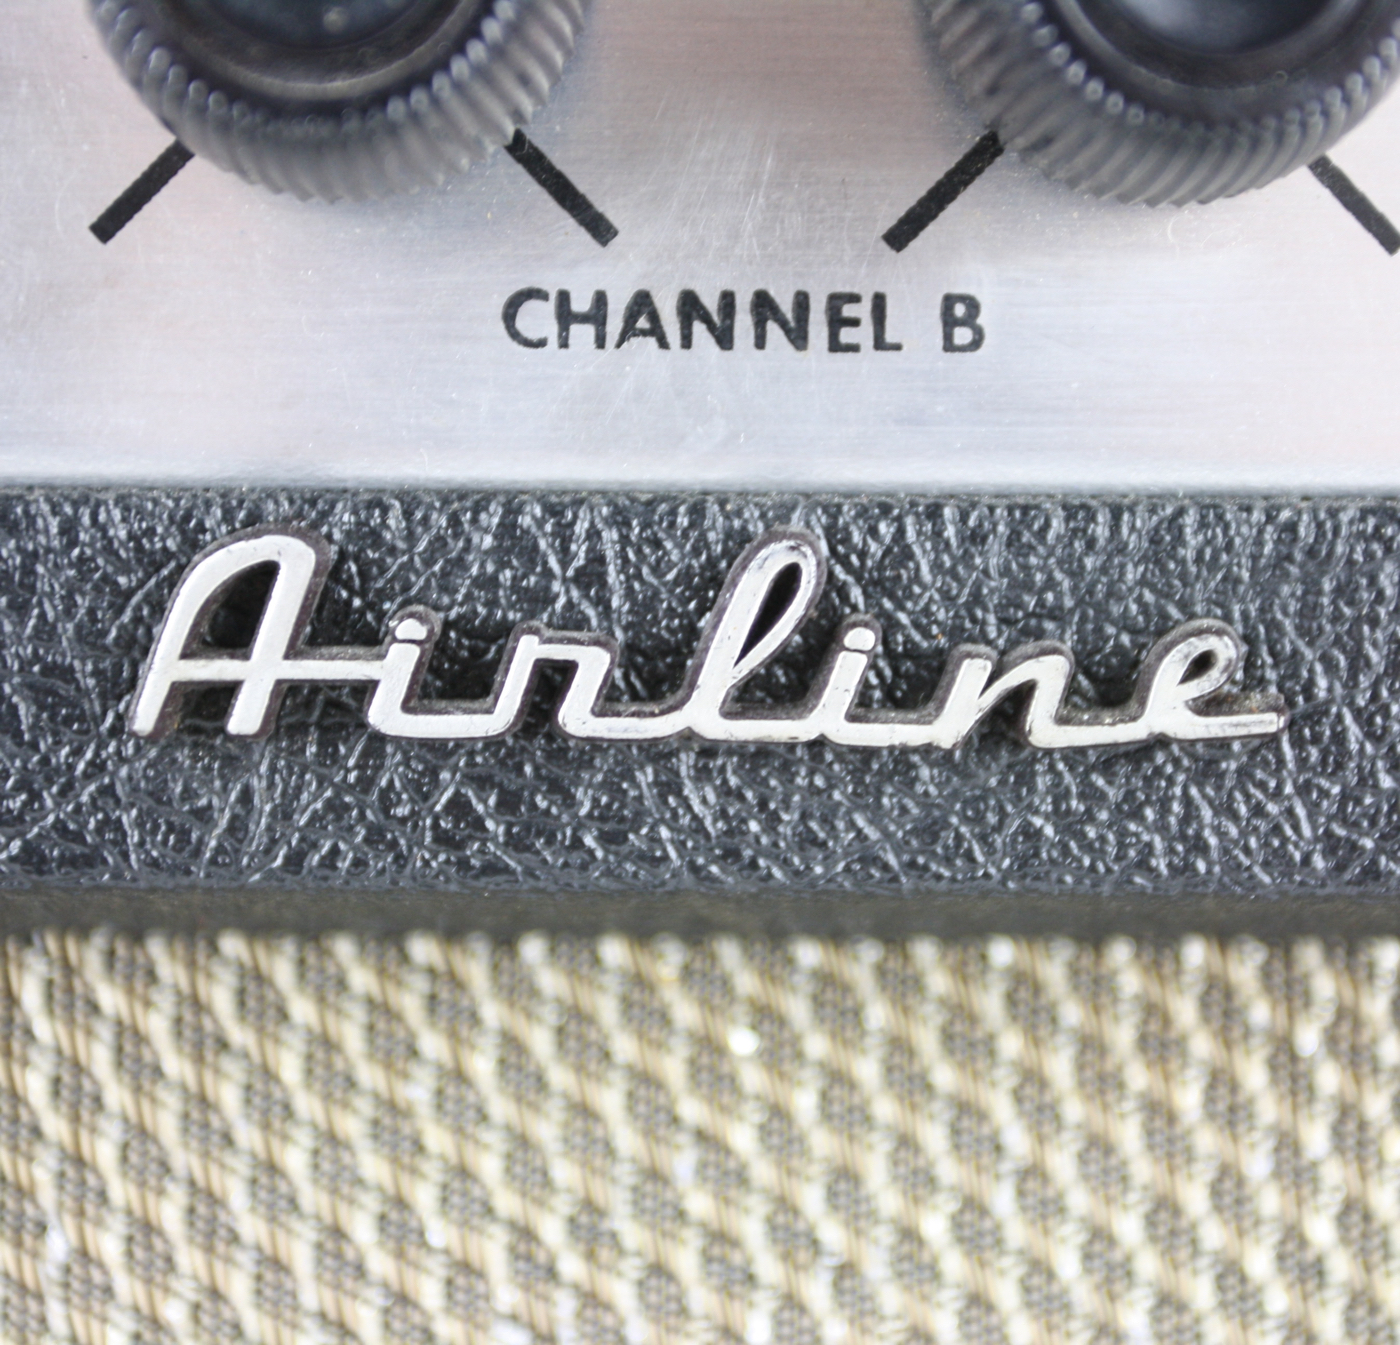 1965 Airline 62-9013A Combo detail 2